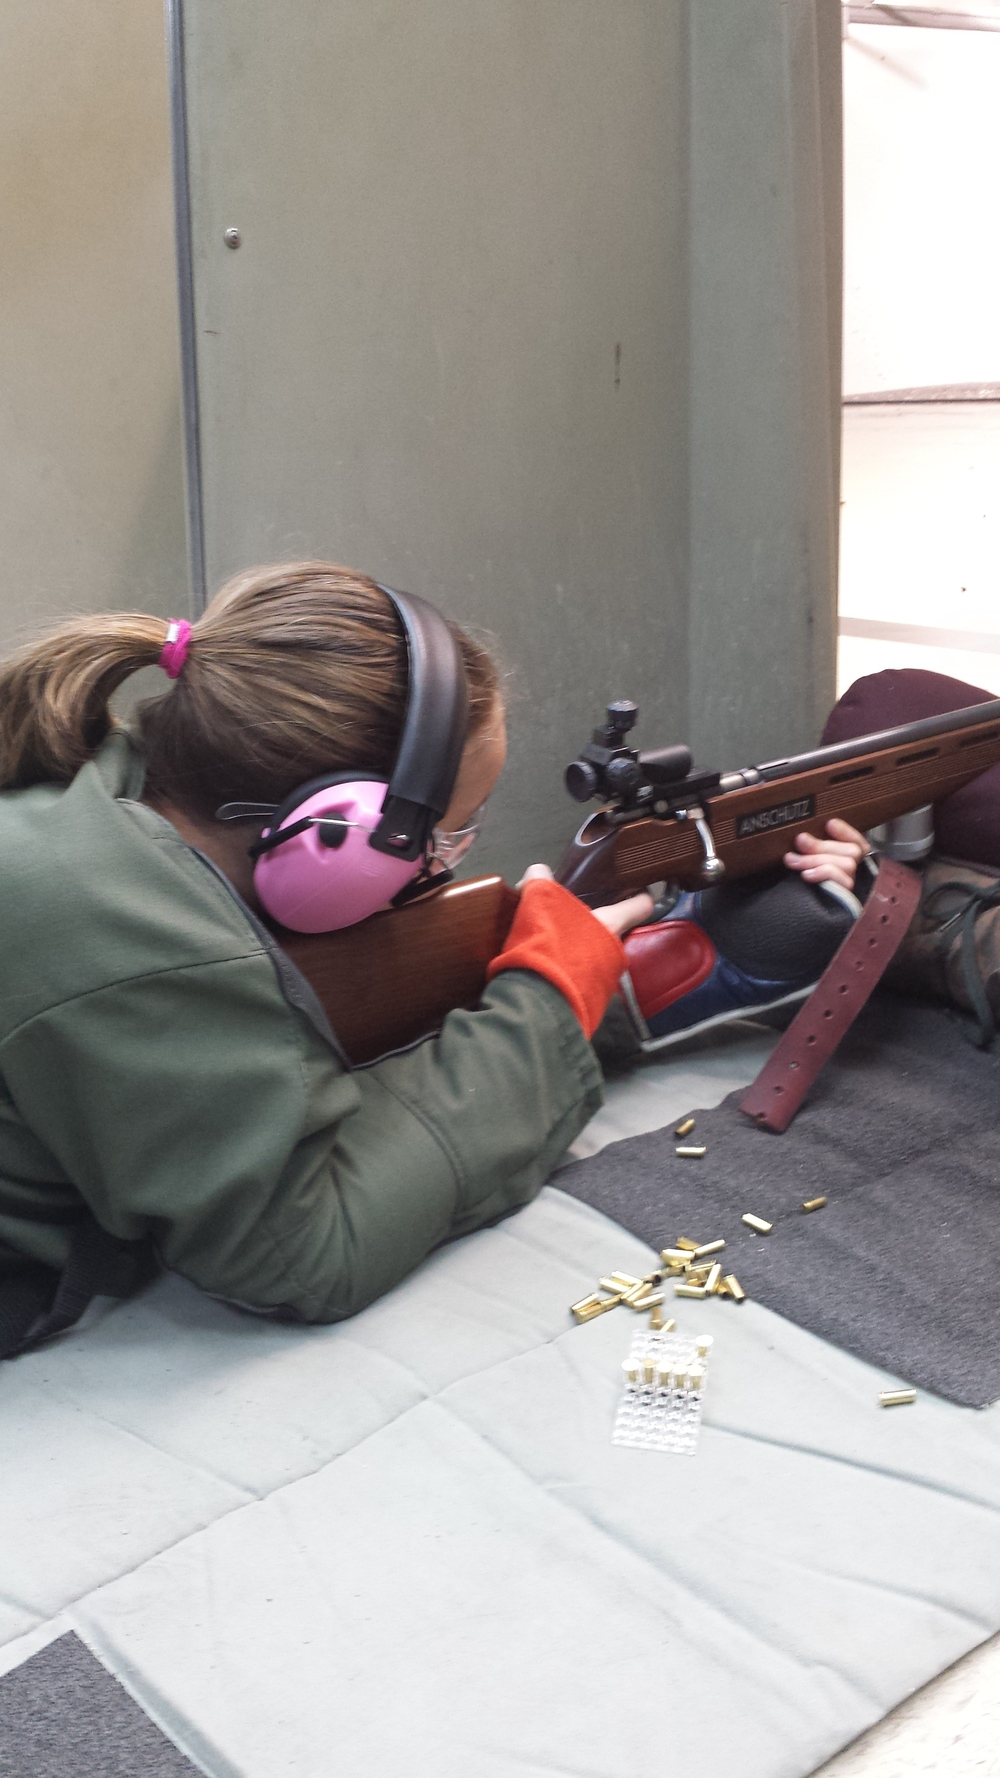 Tara shooting prone